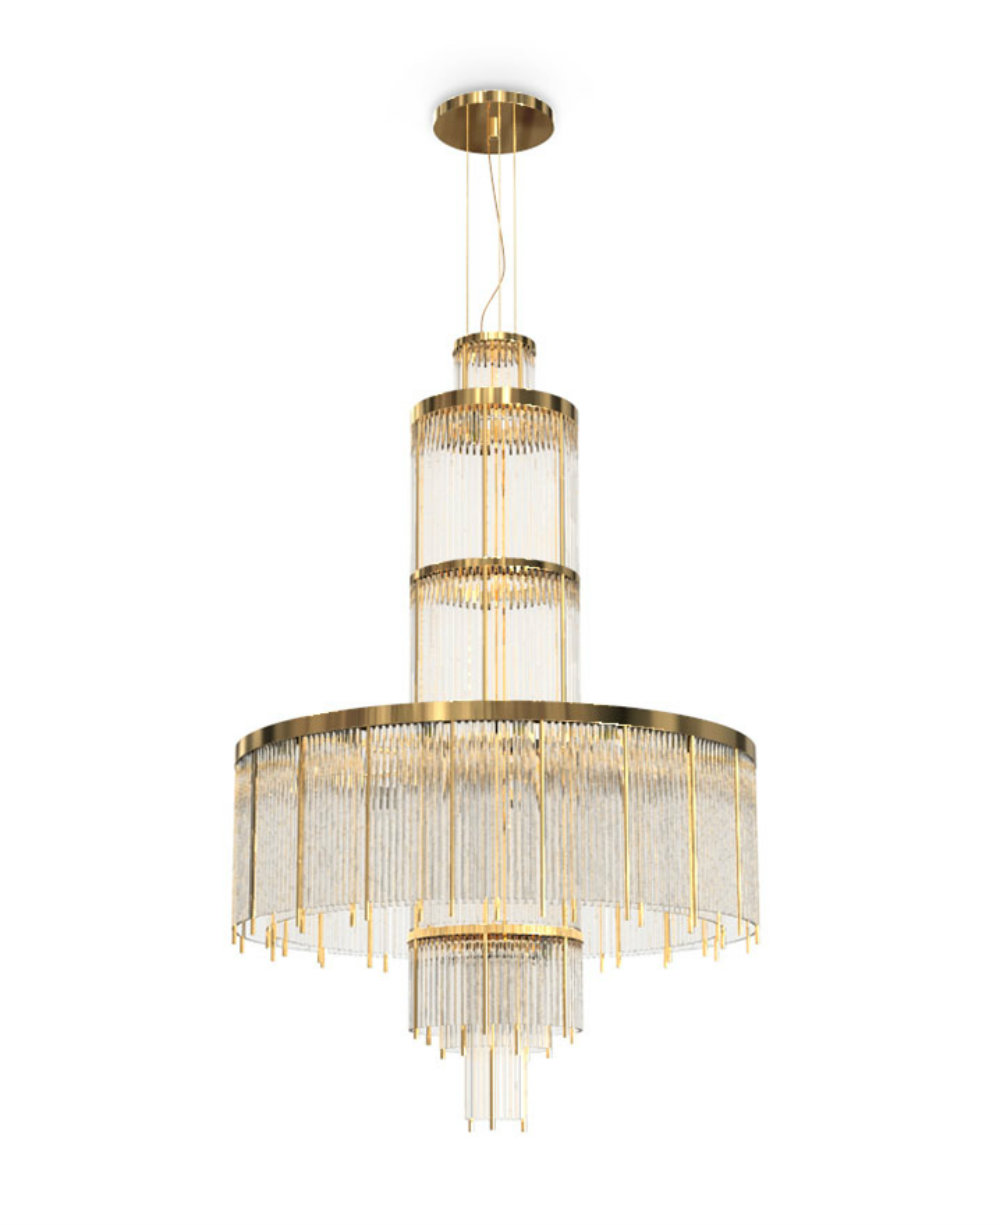 New Lighting Pieces By The Top Luxury Brands